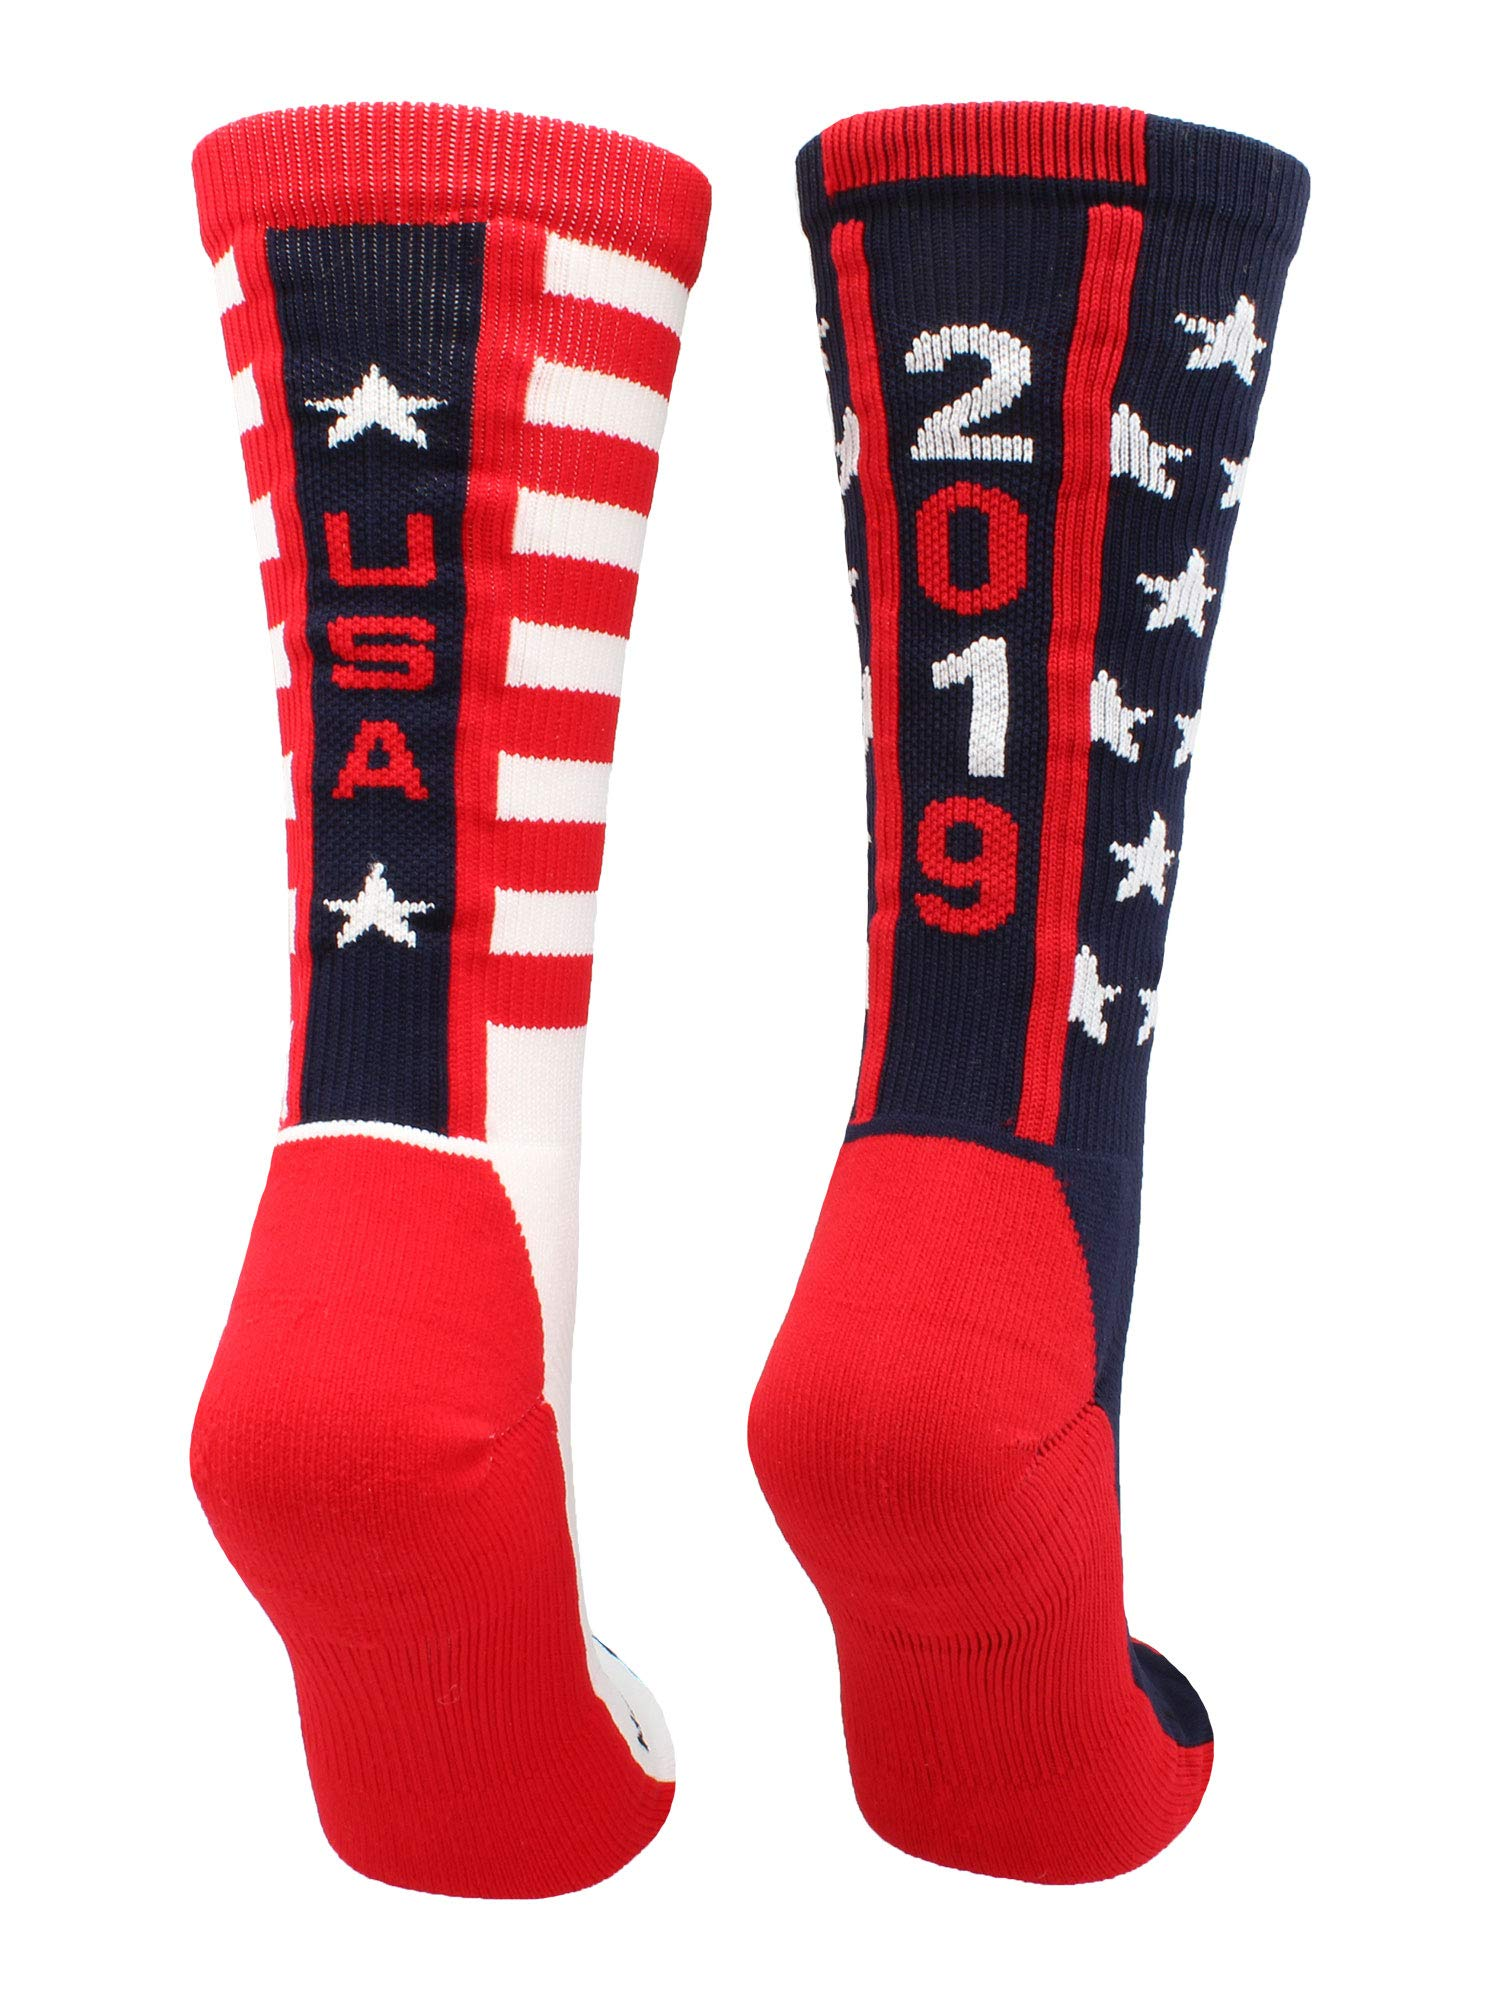 MadSportsStuff USA Pride Athletic Crew Socks (2019-Navy/Red/White, Large)